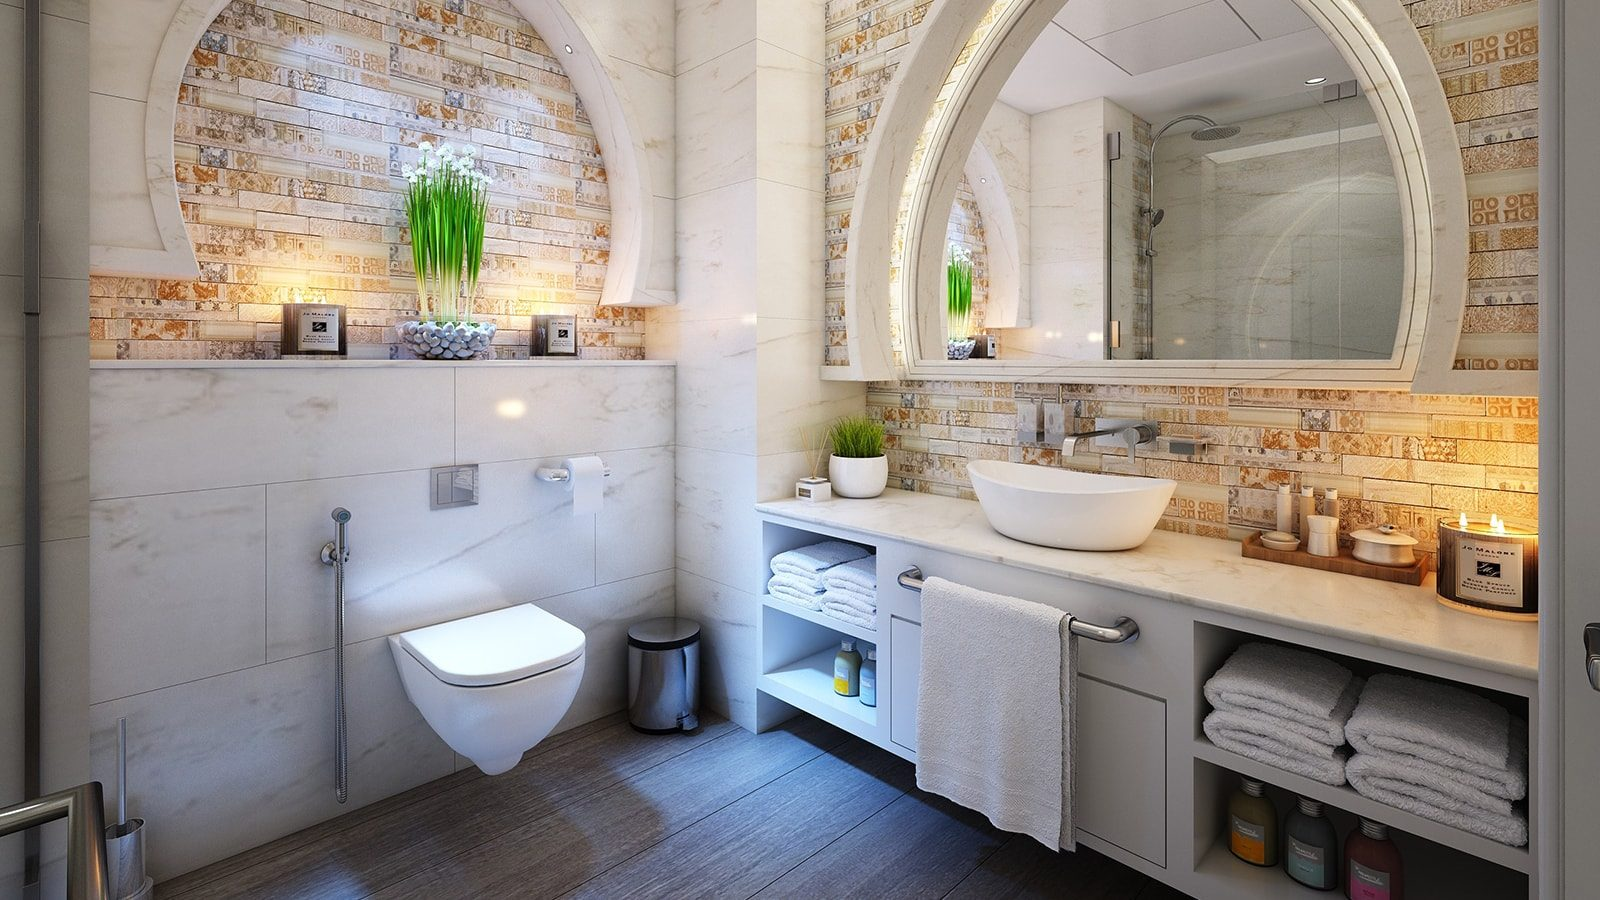 6 Small Bathroom Ideas on a Budget